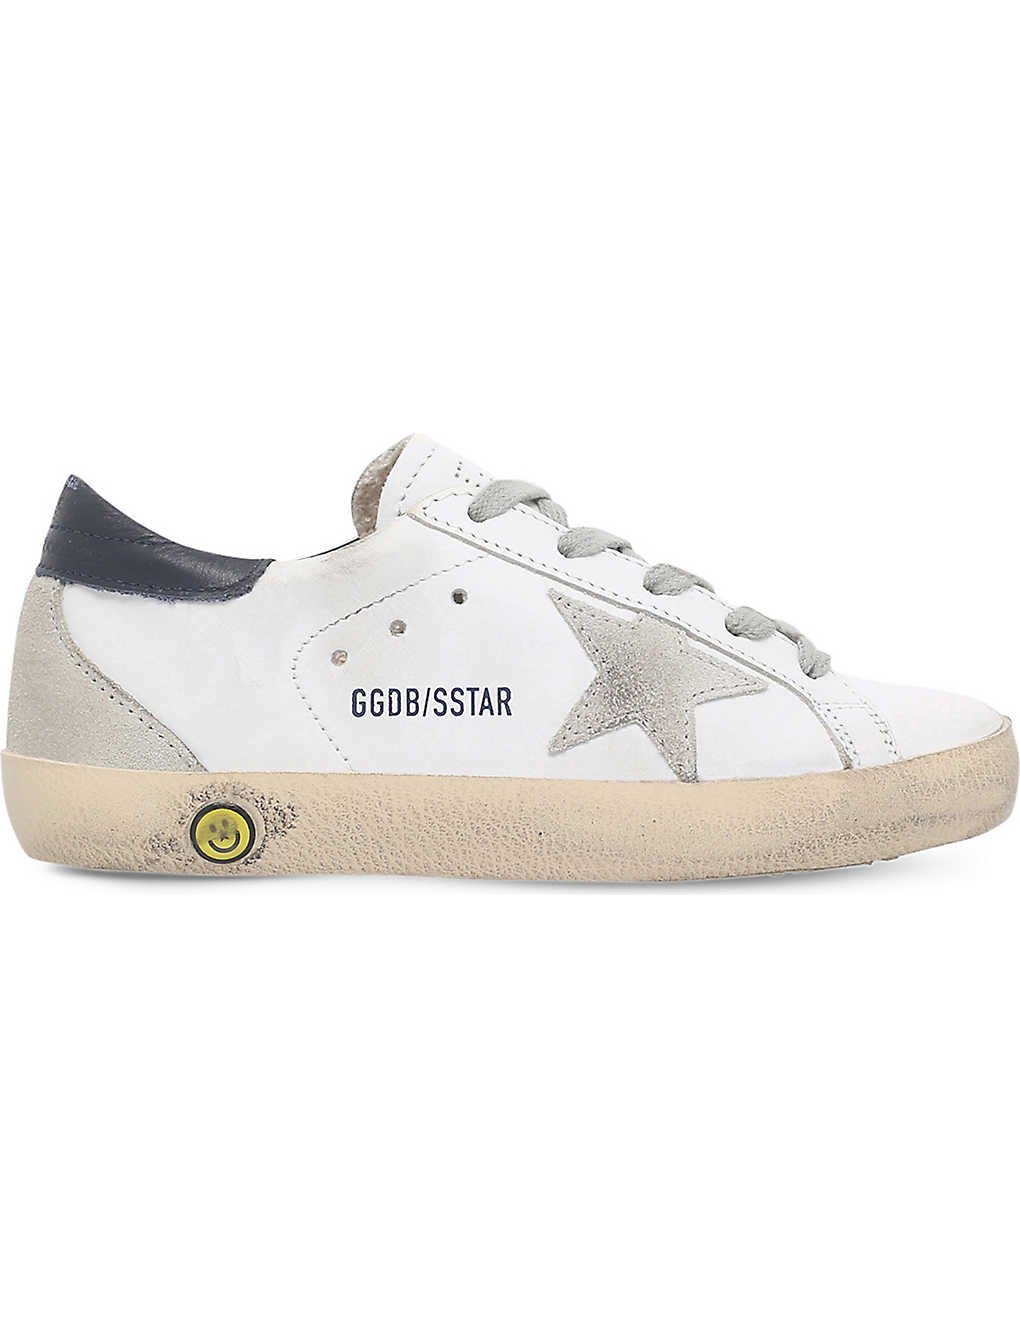 1a535e74a21c5 GOLDEN GOOSE - Superstar distressed leather trainers 6-9 years ...